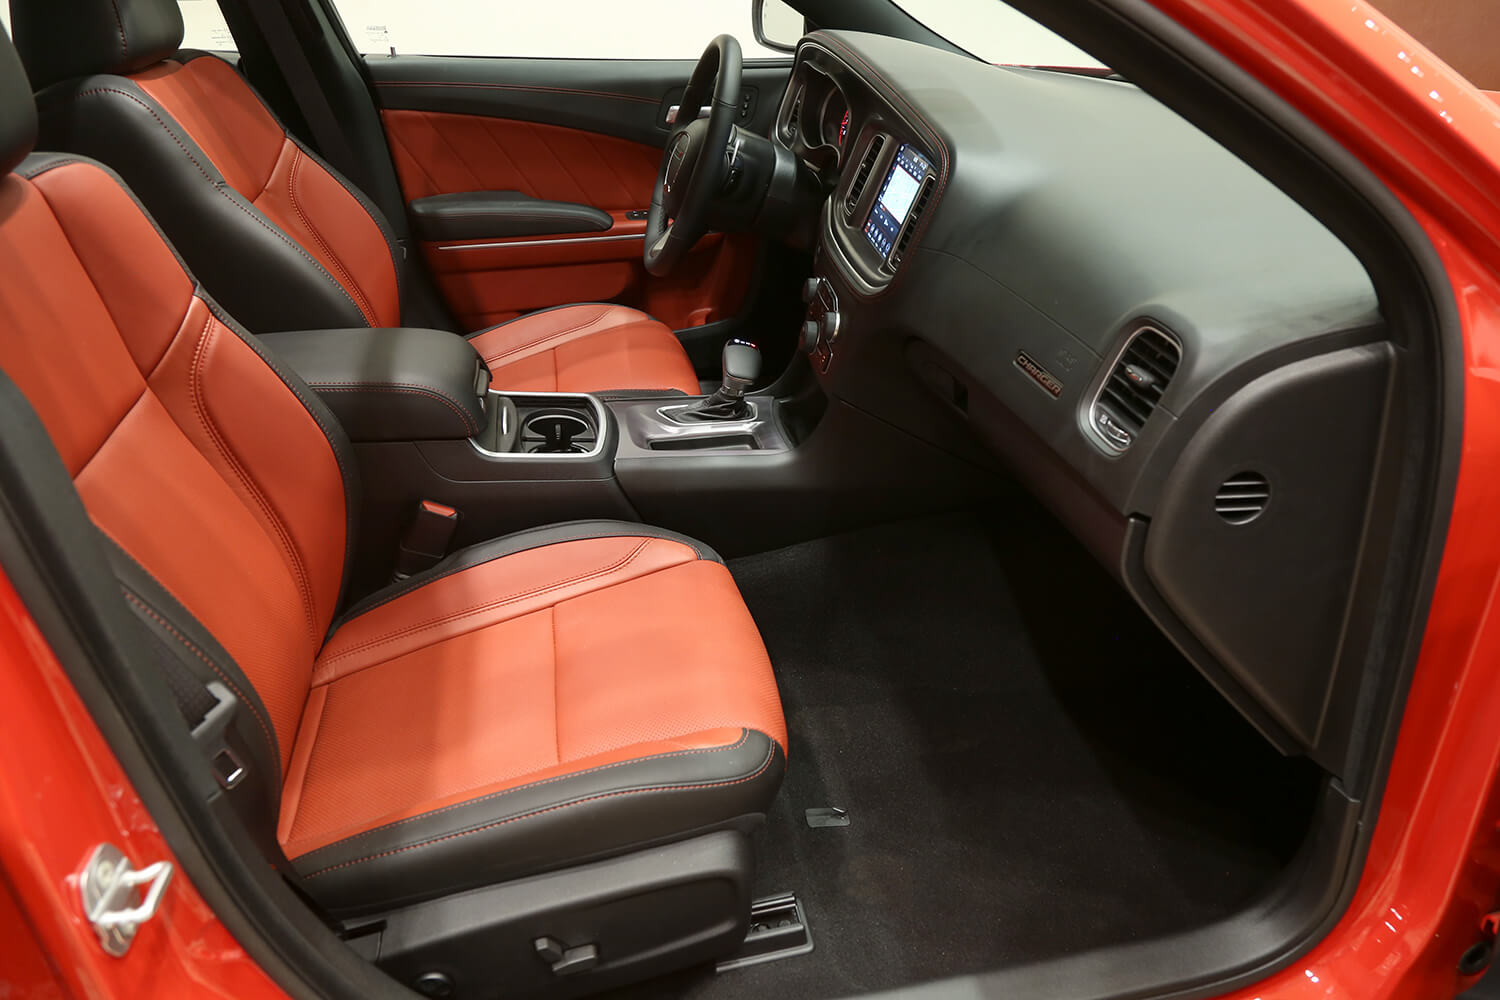 Interior Image for  DODGE Charger RT- Premium 2021